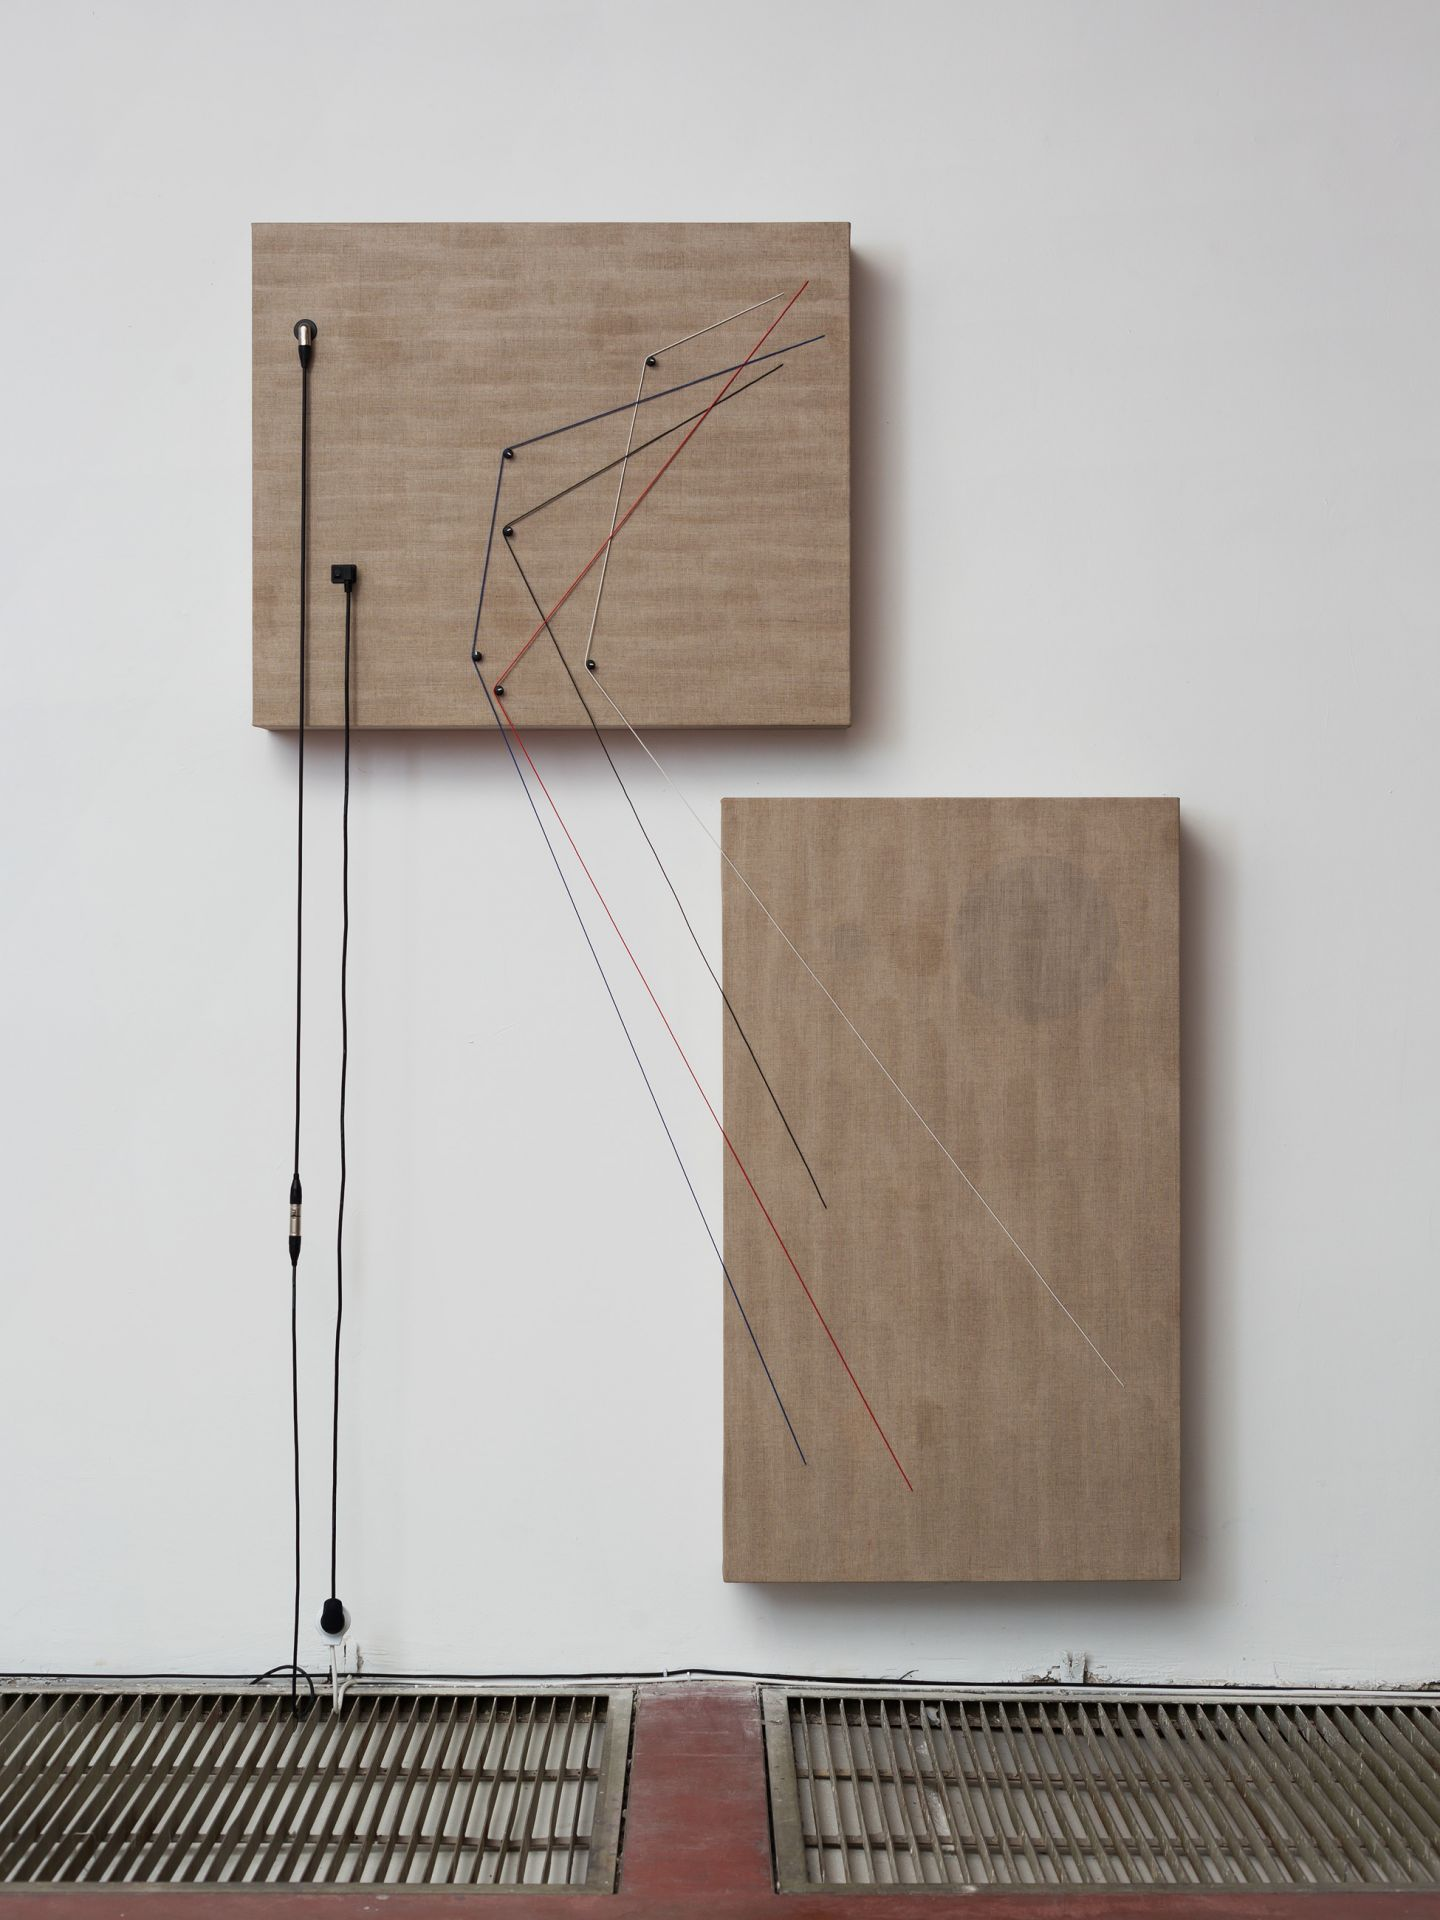 """Transition , 2016, Wood, canvas, electronics, cables, knobs, speakers, 87 4/5 × 59 4/5 × 6 1/2"""""""